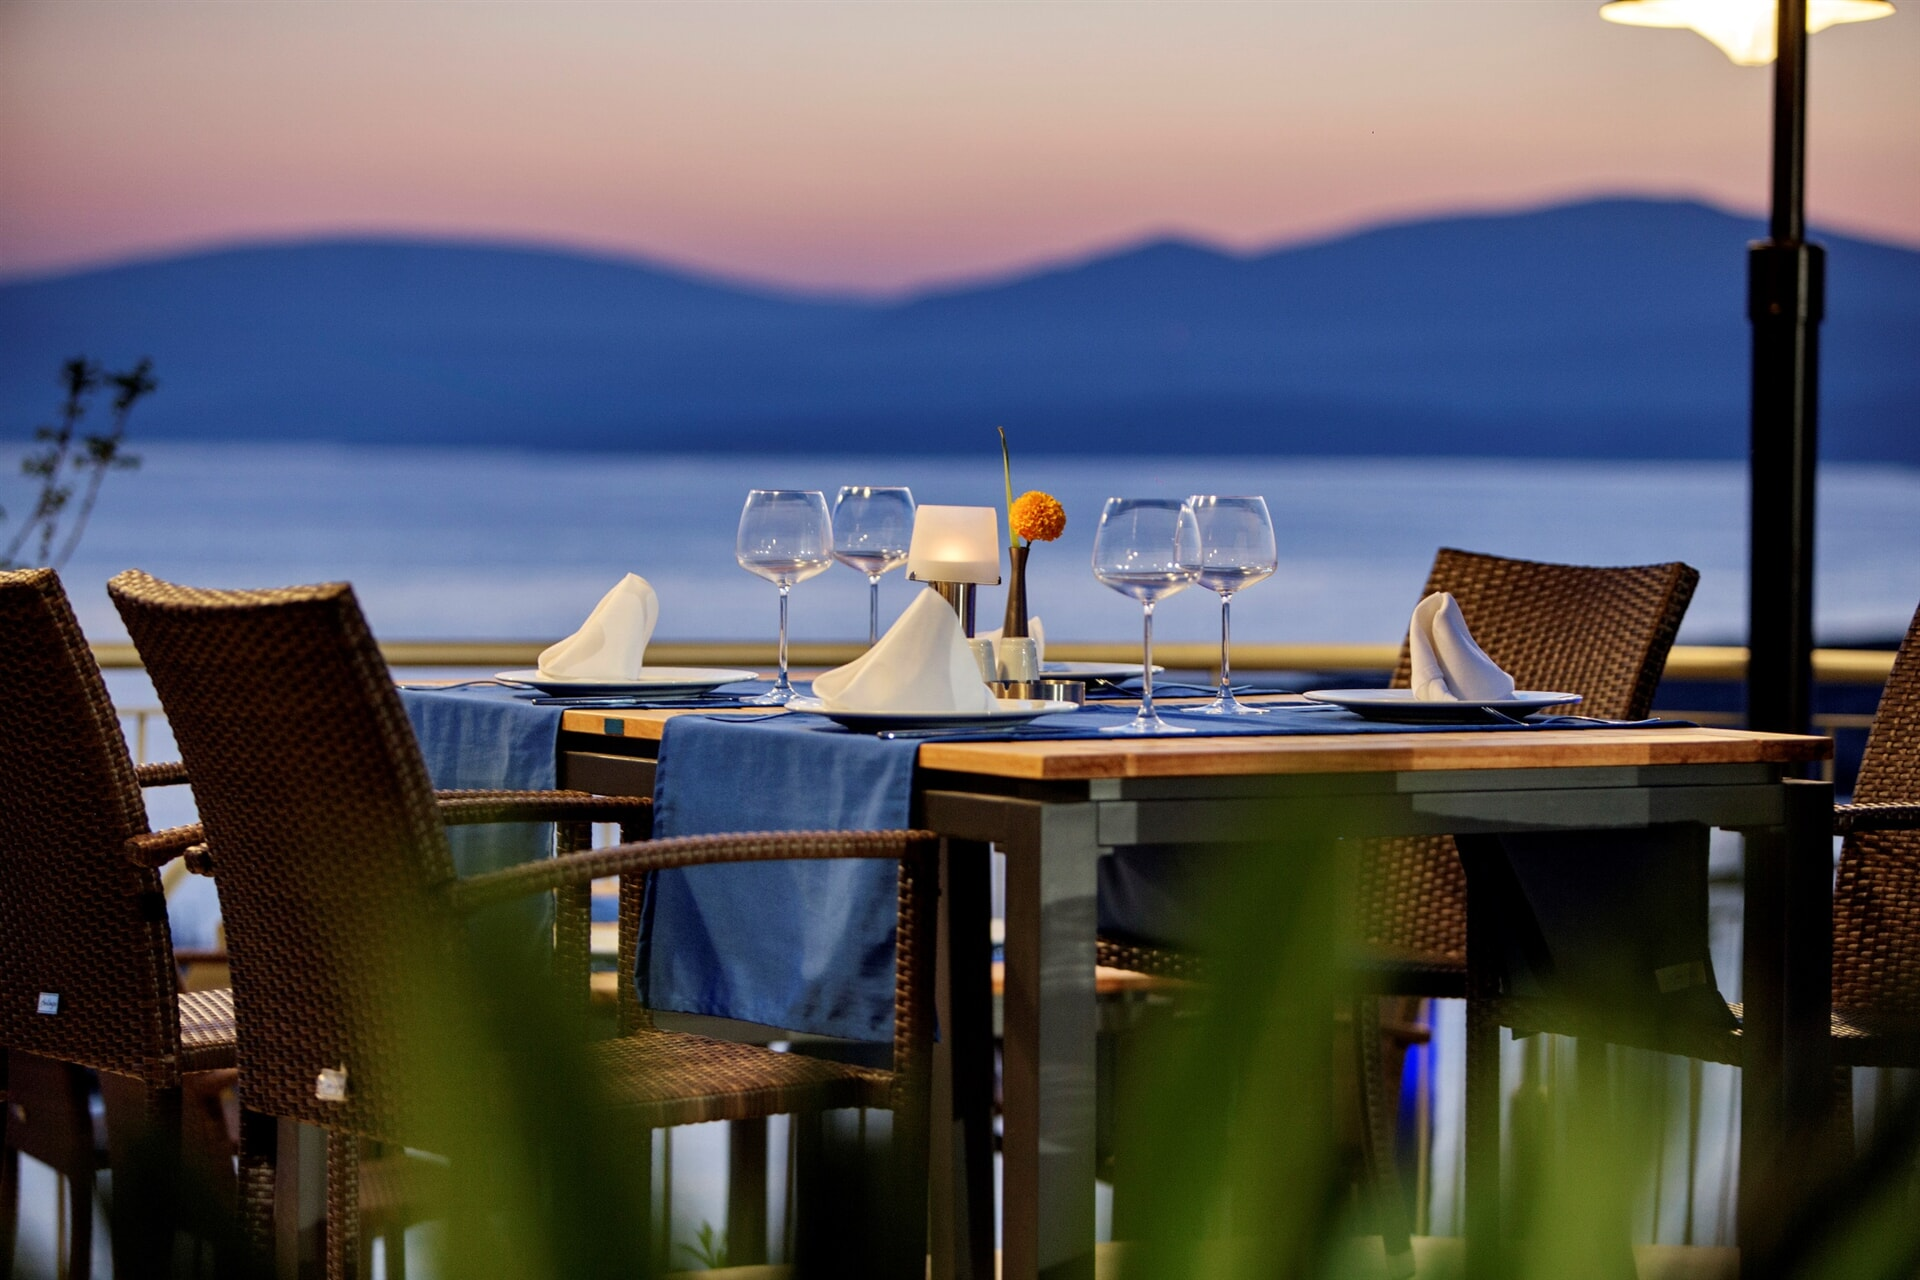 EUPHORIA AEGEAN RESORT AND THERMAL HOTEL – Dine & Drink